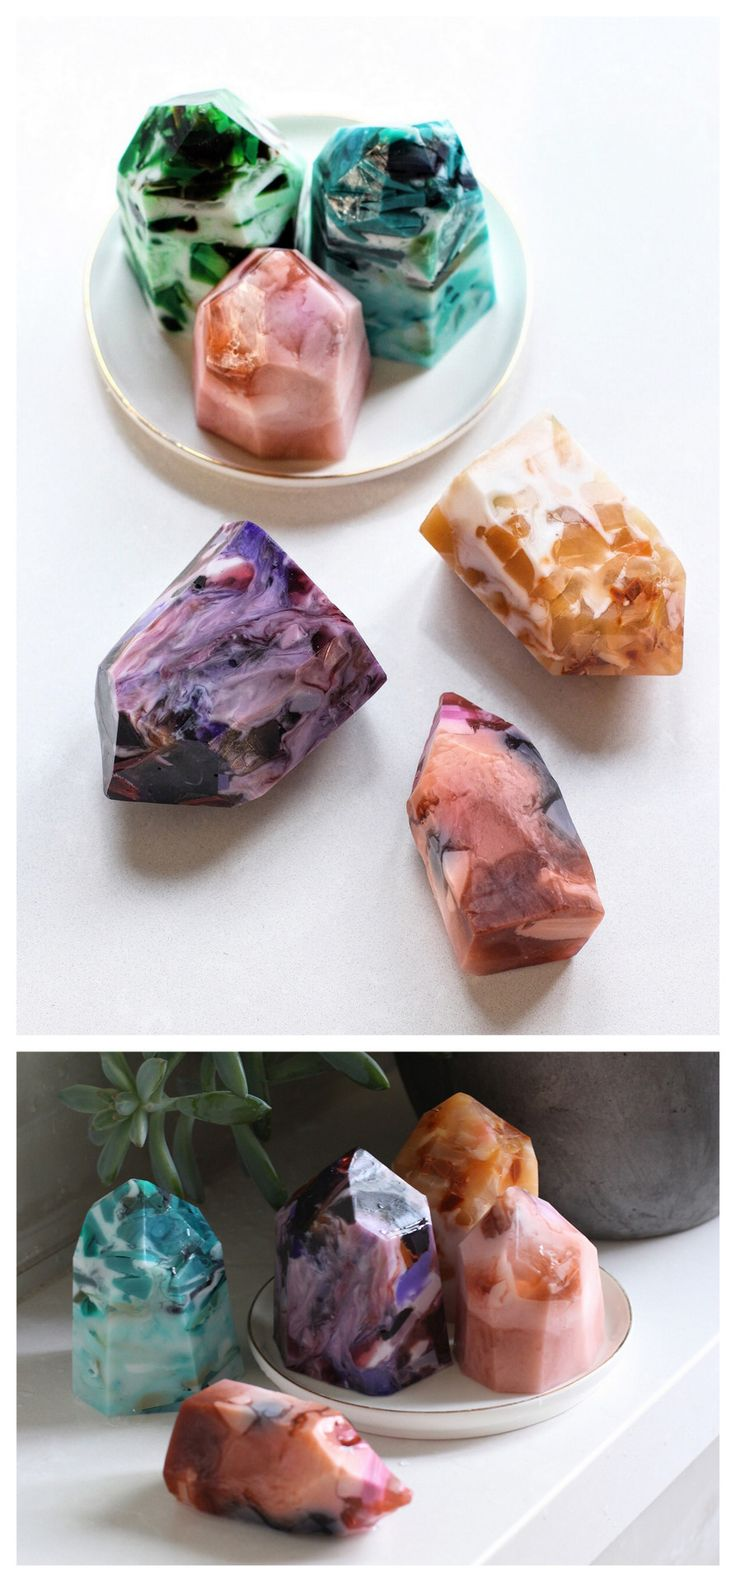 DIY Gemstone Soap Tutorial from Honestly WTF.Make this gift worthy DIY Gemstone Soap using easy melt and pour soap. For homemade soaps like Orange Clove Gardener's Soap and many more go here: diychristmascrafts.tumblr.com/tagged/soap, and for more...